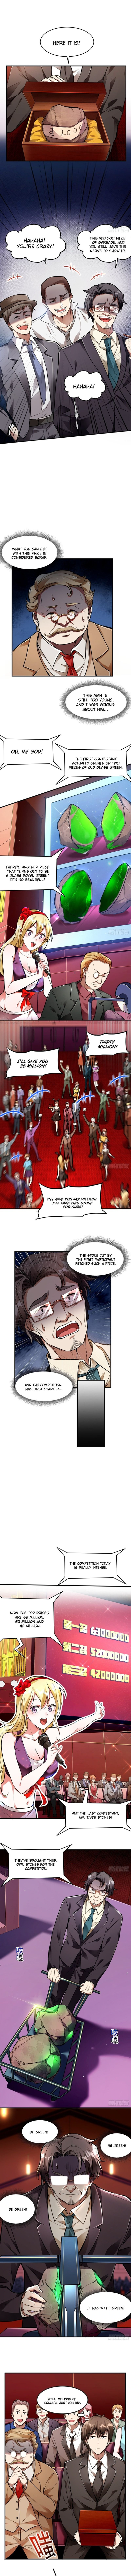 Son-In-Law Above Them All - chapter 11 - #3